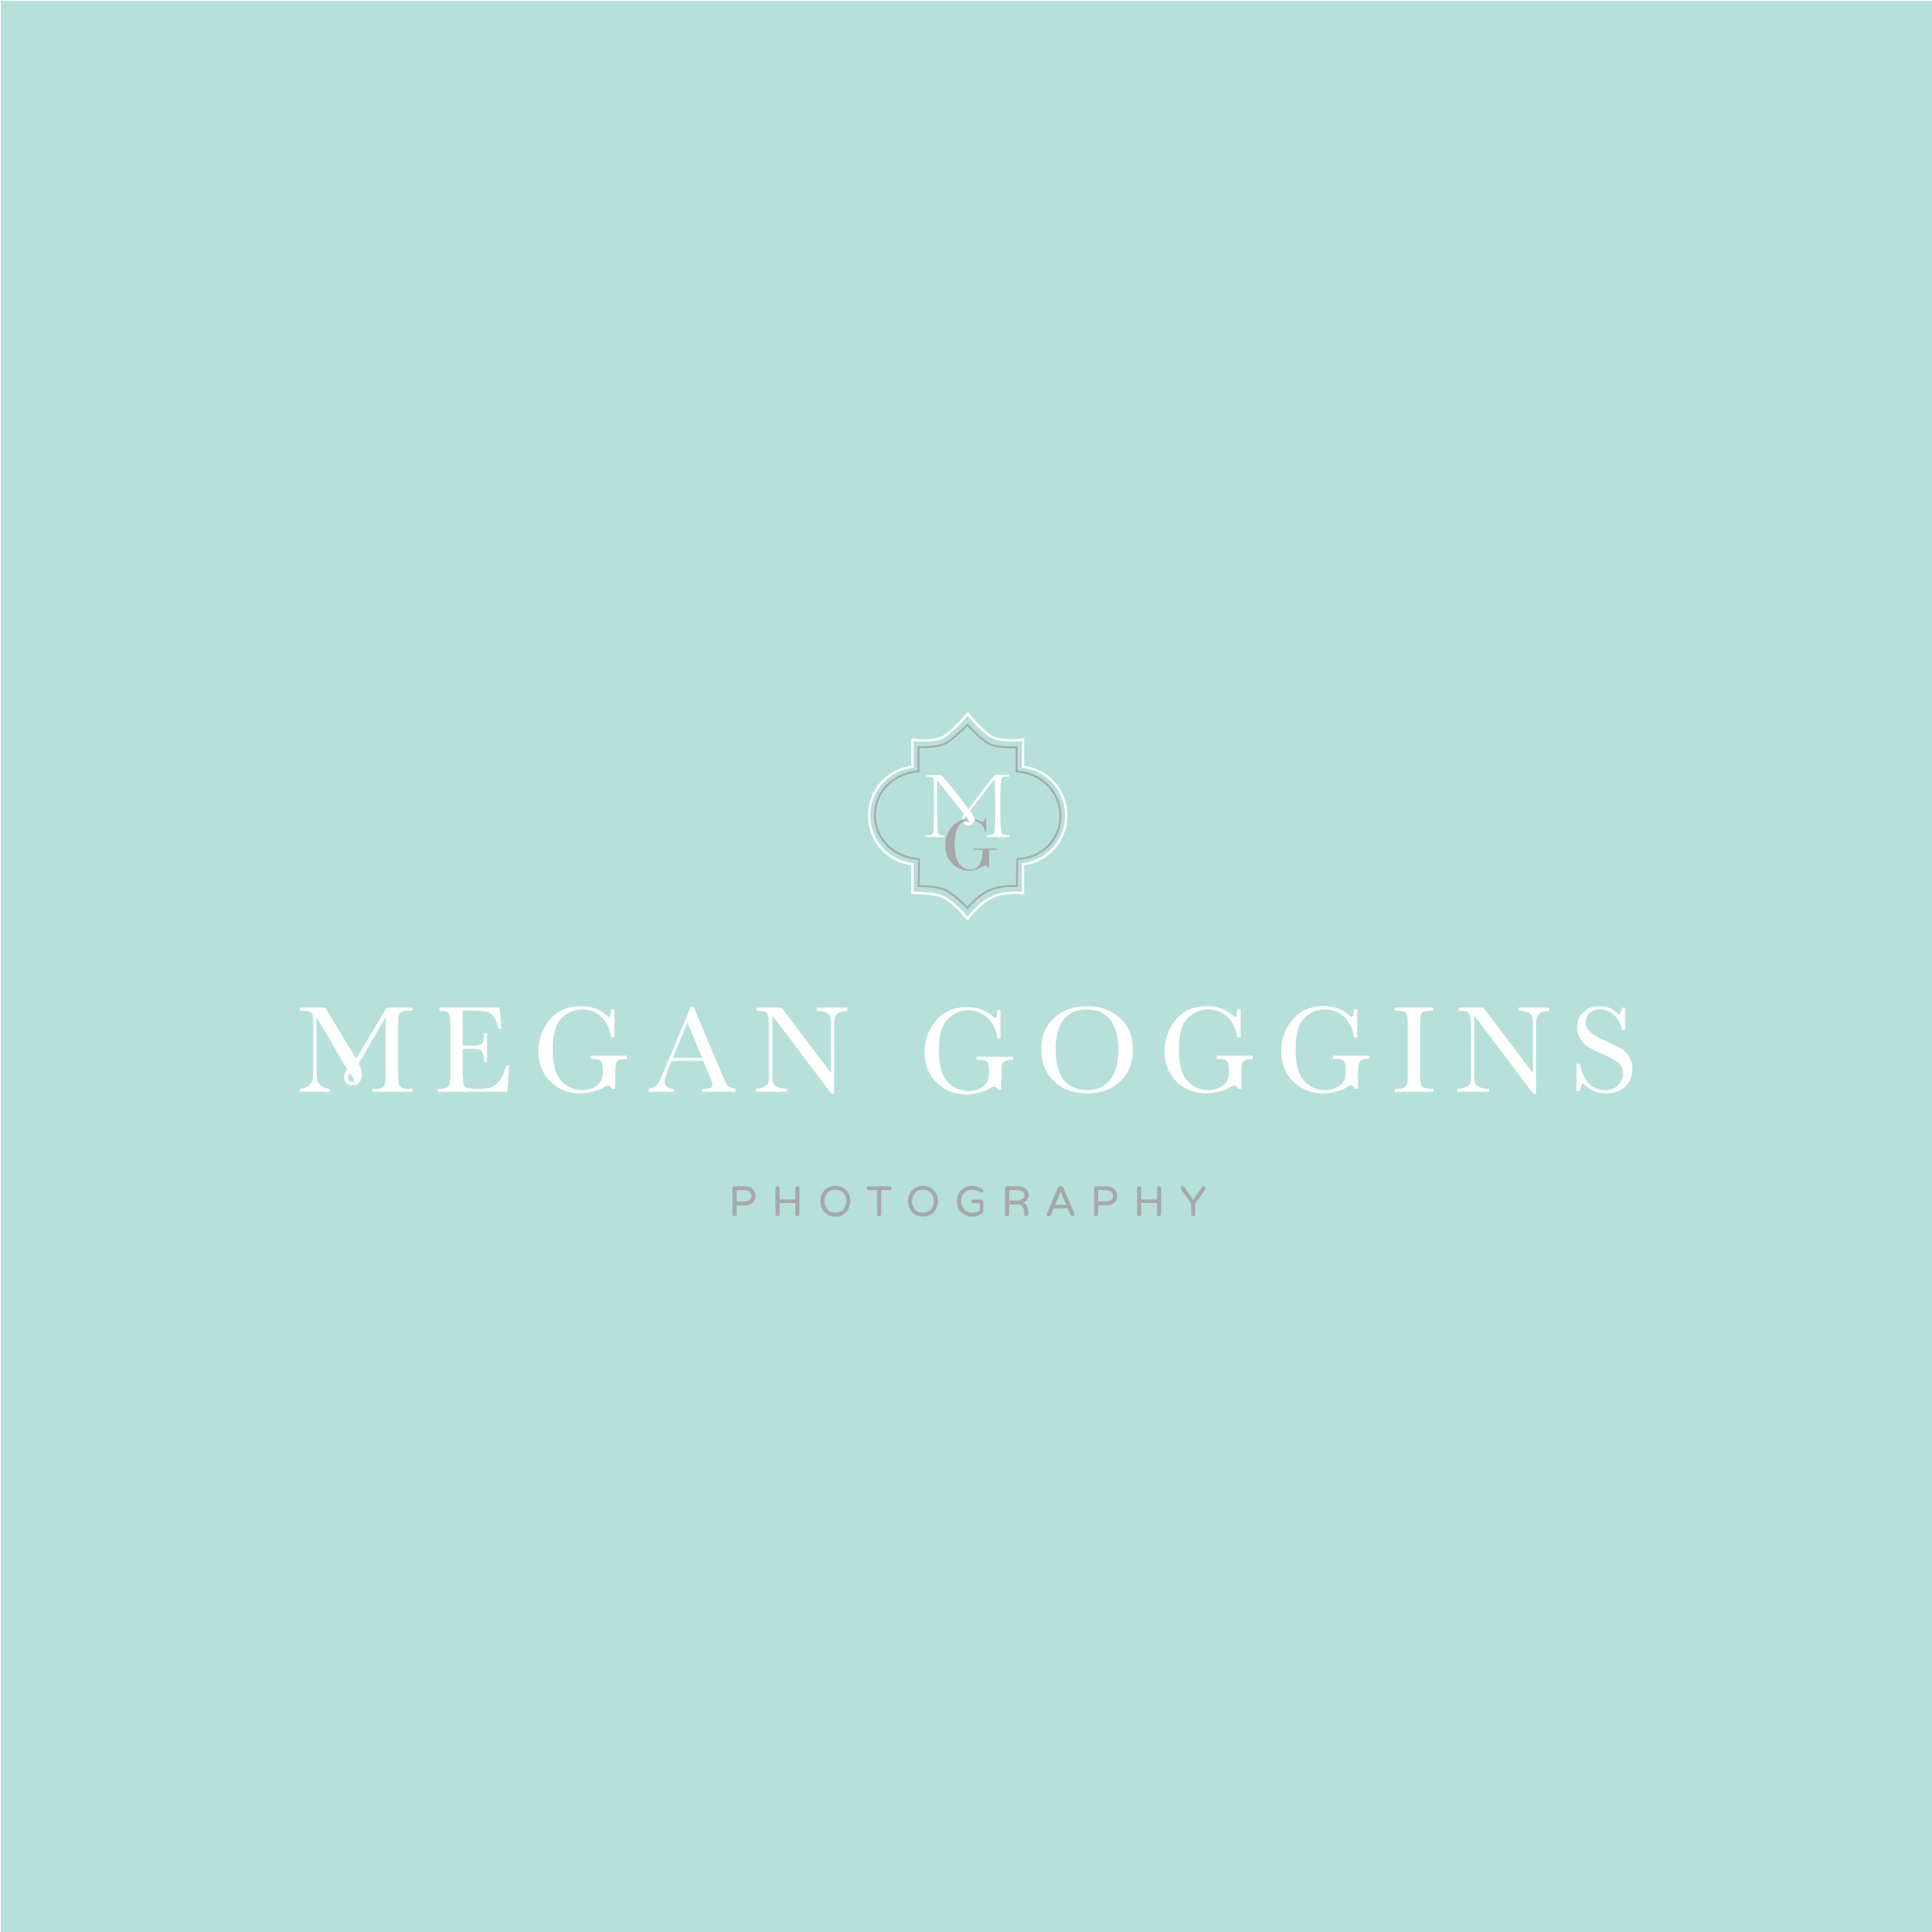 Megan Goggins Photography - wedding photographer logo - feminine - preppy logo - tulsa brand studio - tulsa graphic designer - hayley bigham designs